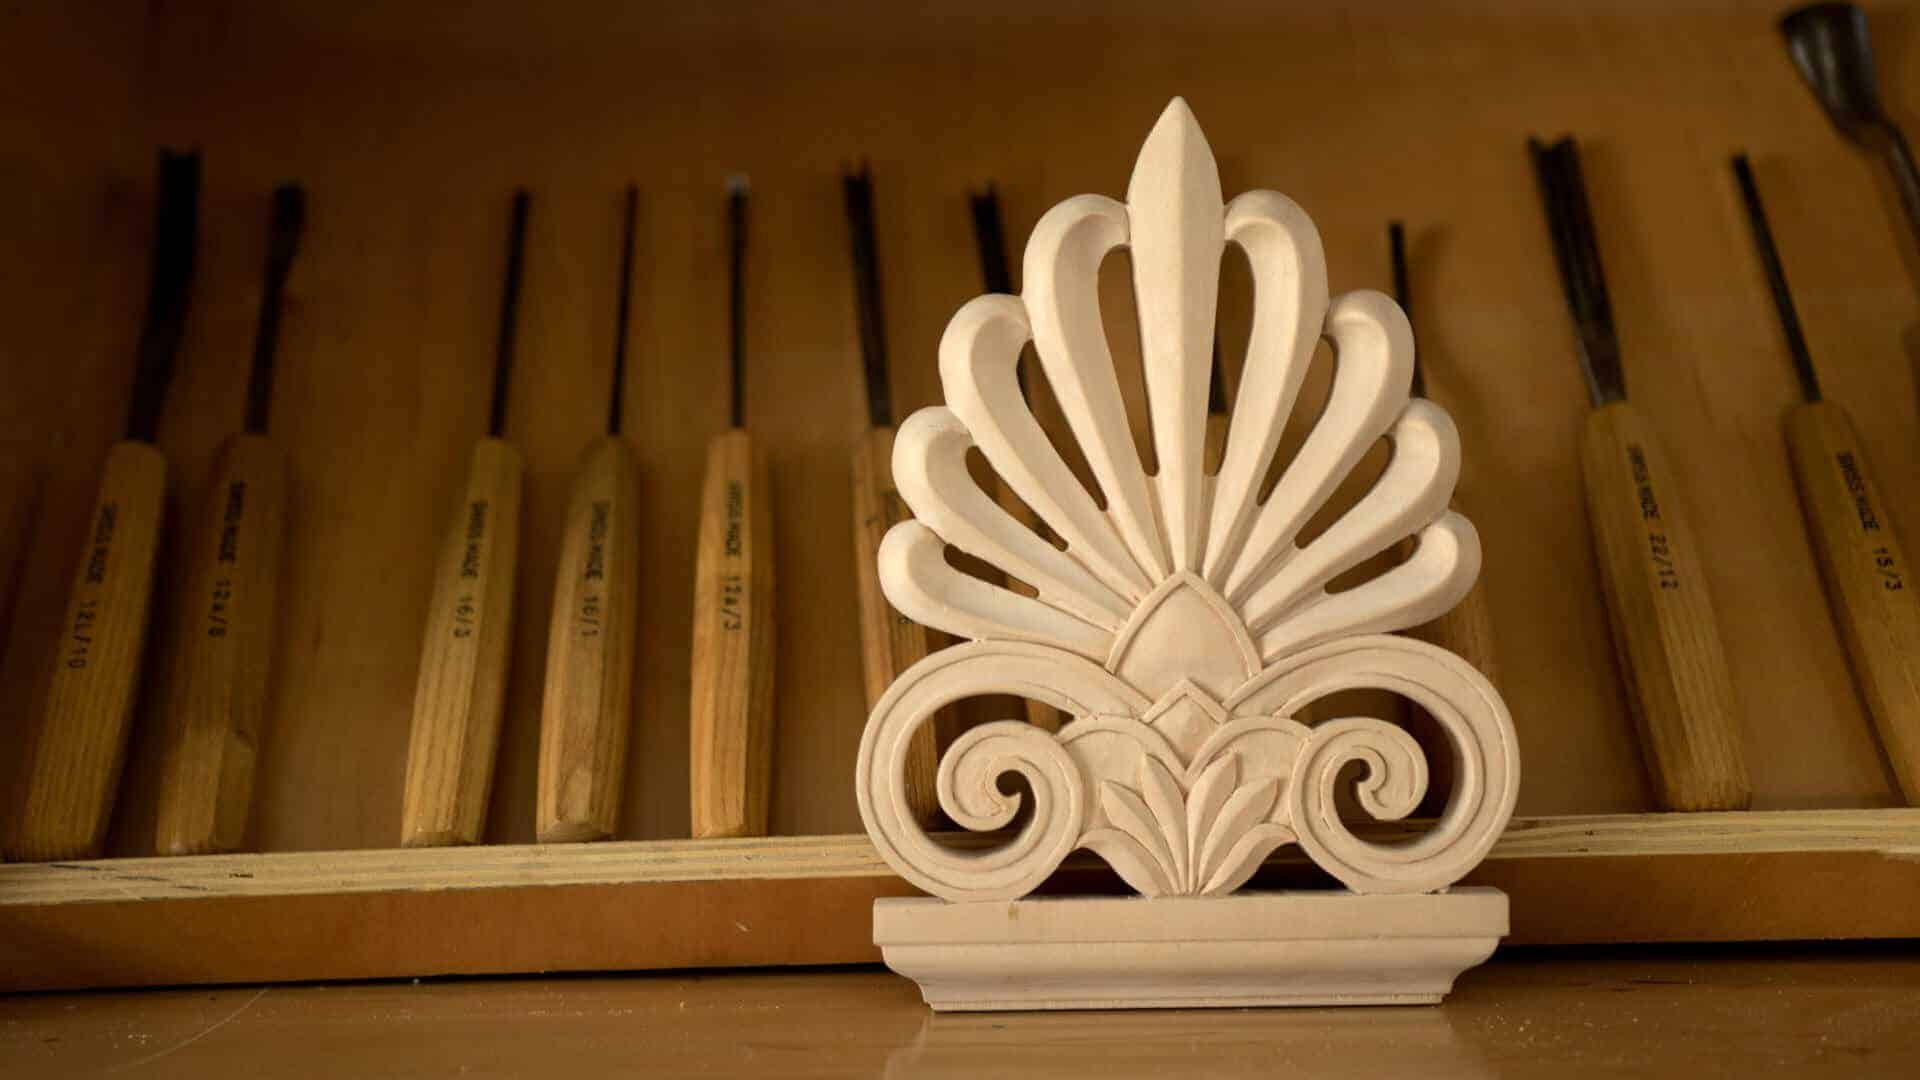 Learn to Carve a Greek Acroterion at School of Woodcarving #woodcarving #woodworking @grabovetskiy http://schoolofwoodcarving.com/